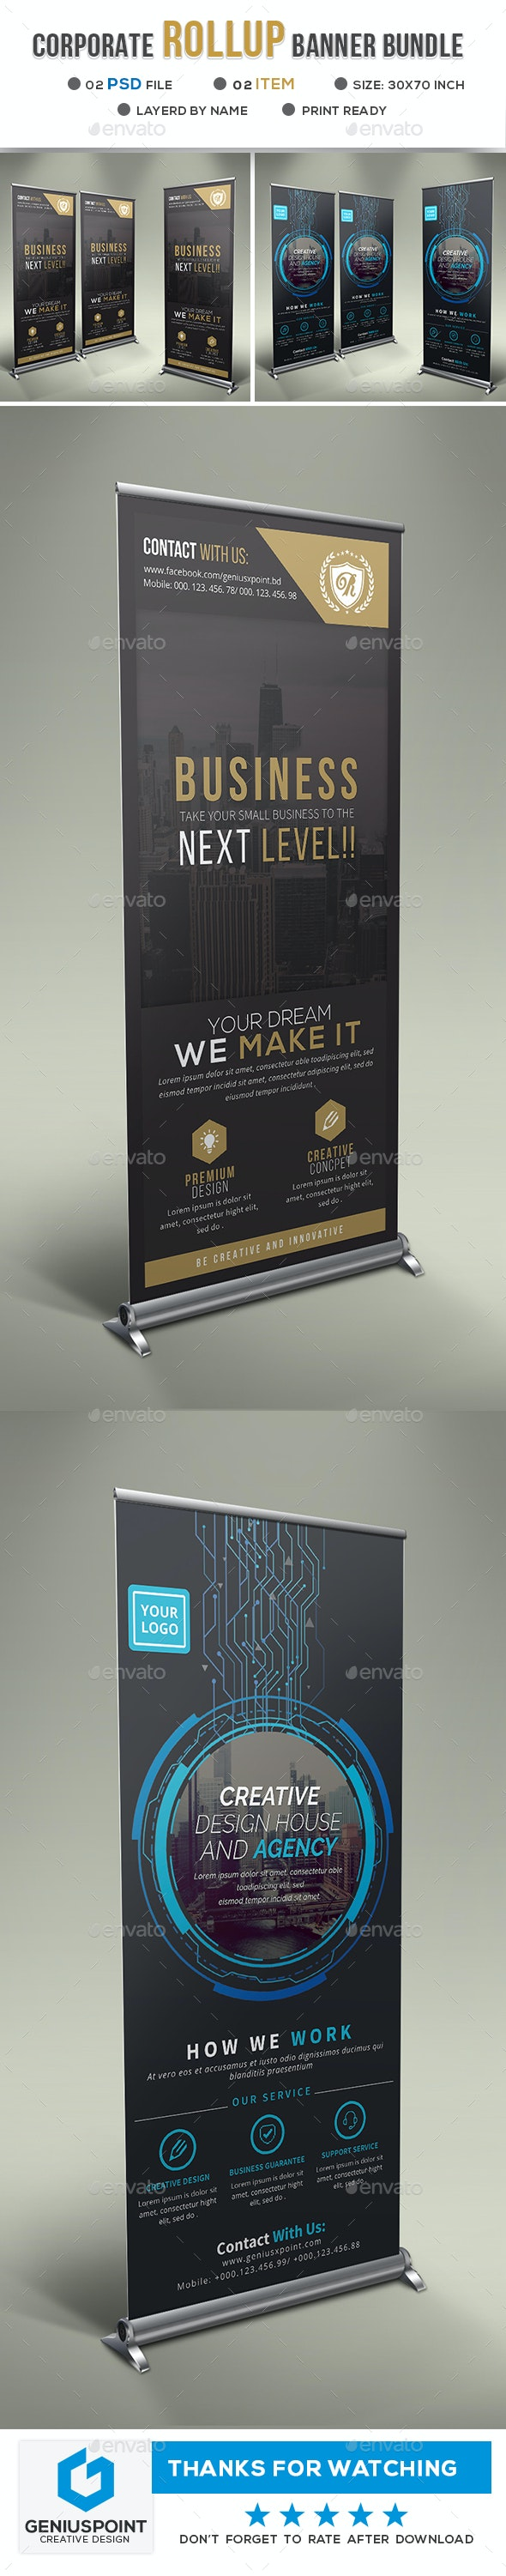 Corporate Business Roll-up Banner Bundle - Signage Print Templates